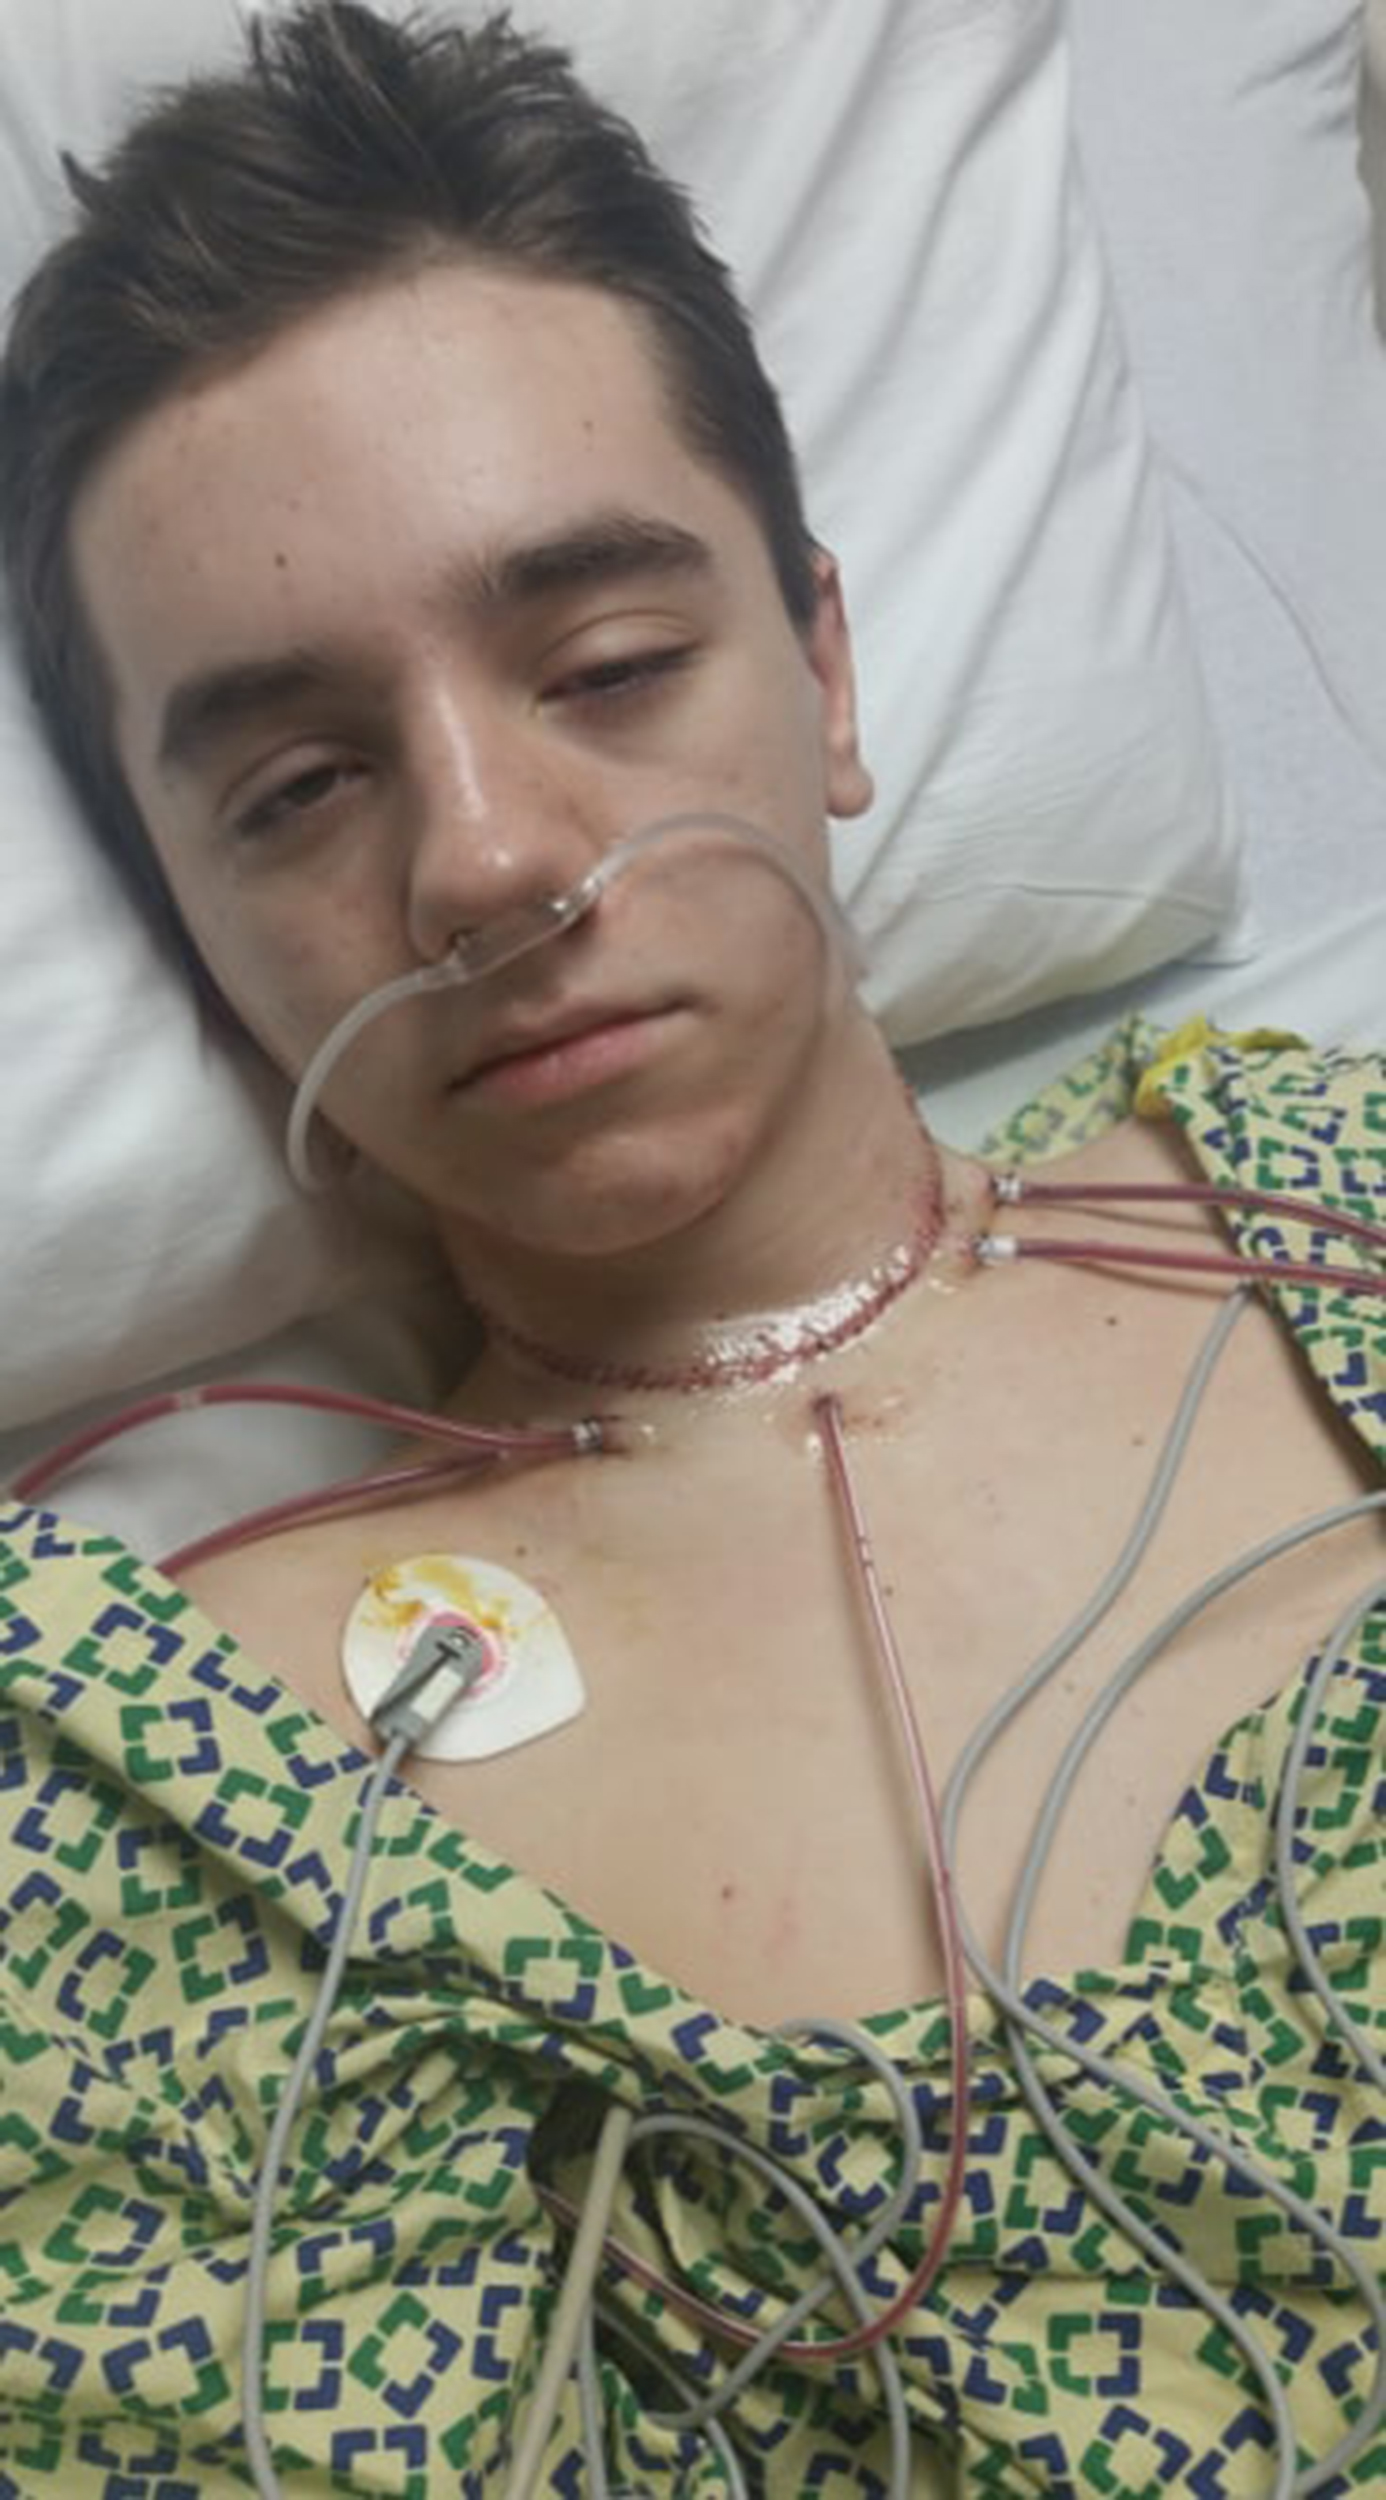 Teen With Stage 4 Medullary Thyroid Cancer Beats Odds To Graduate